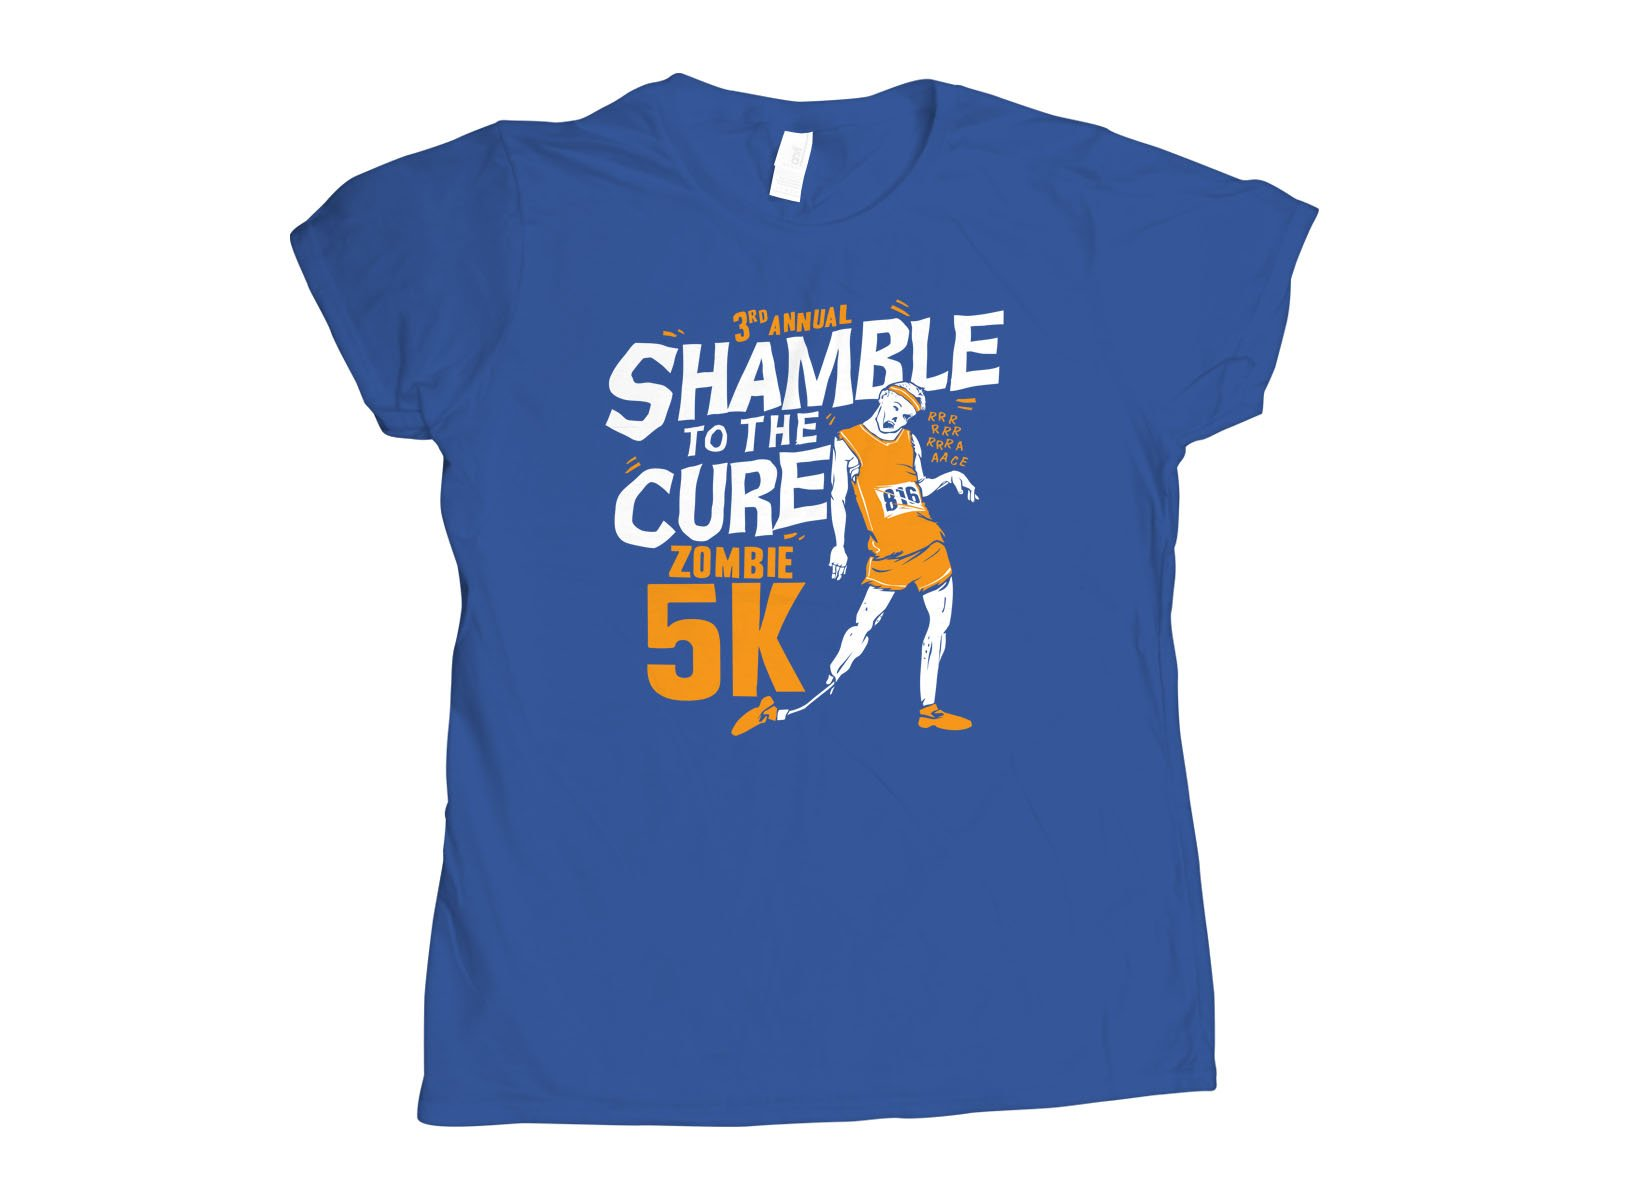 Shamble To The Cure Zombie 5K on Womens T-Shirt